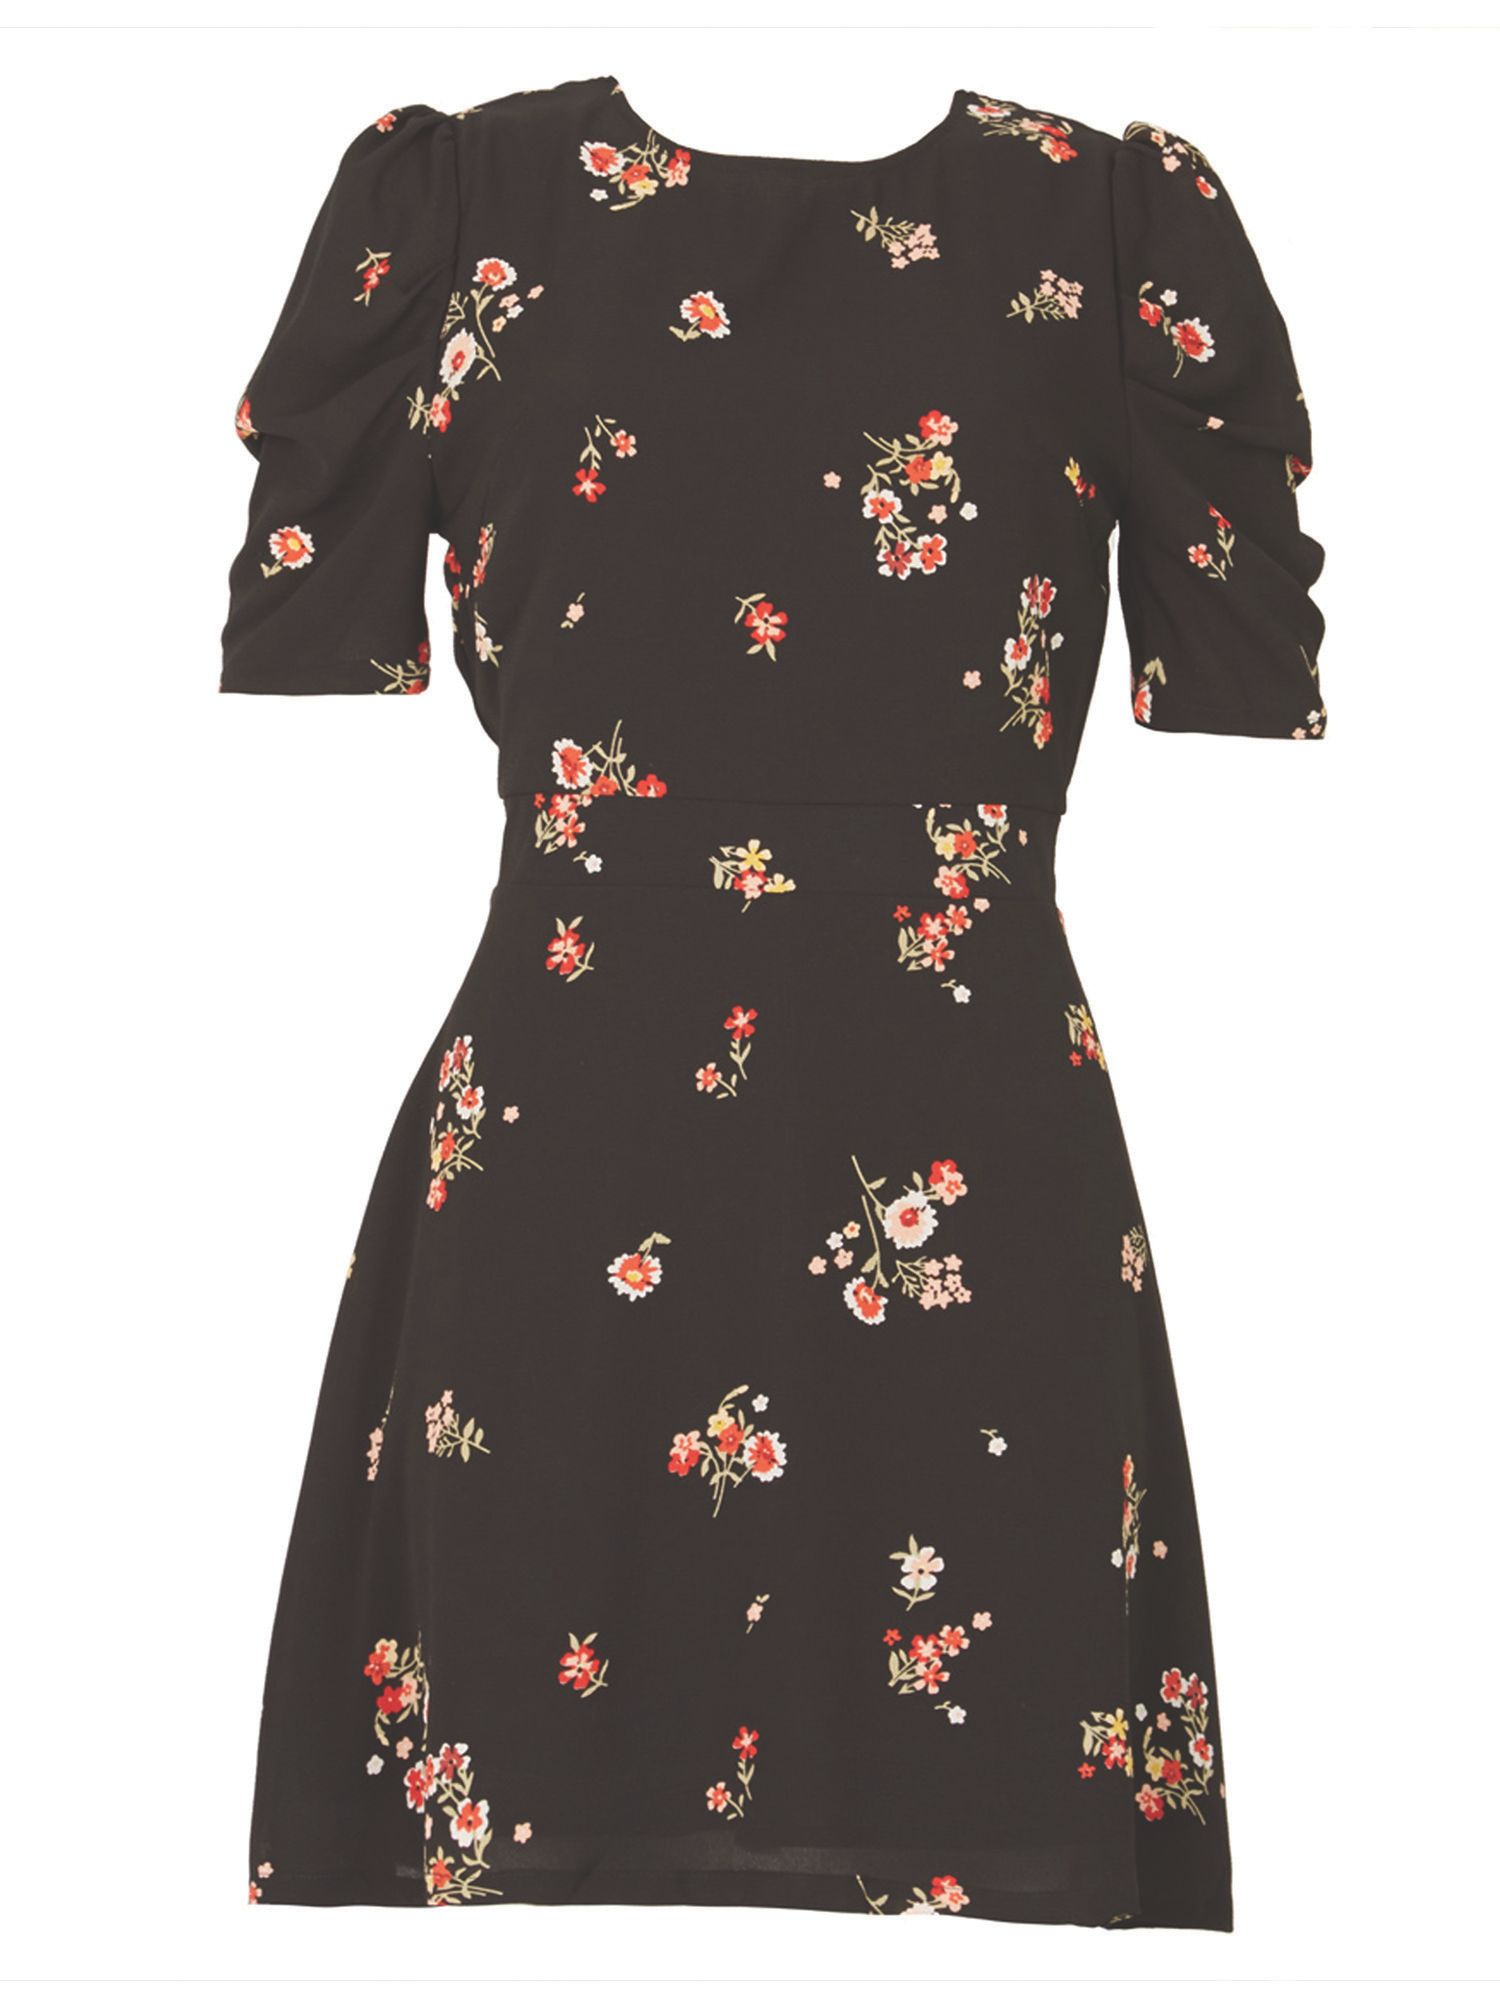 MISSTRUTH Floral Print Ruched Sleeve Dress, Multi-Coloured